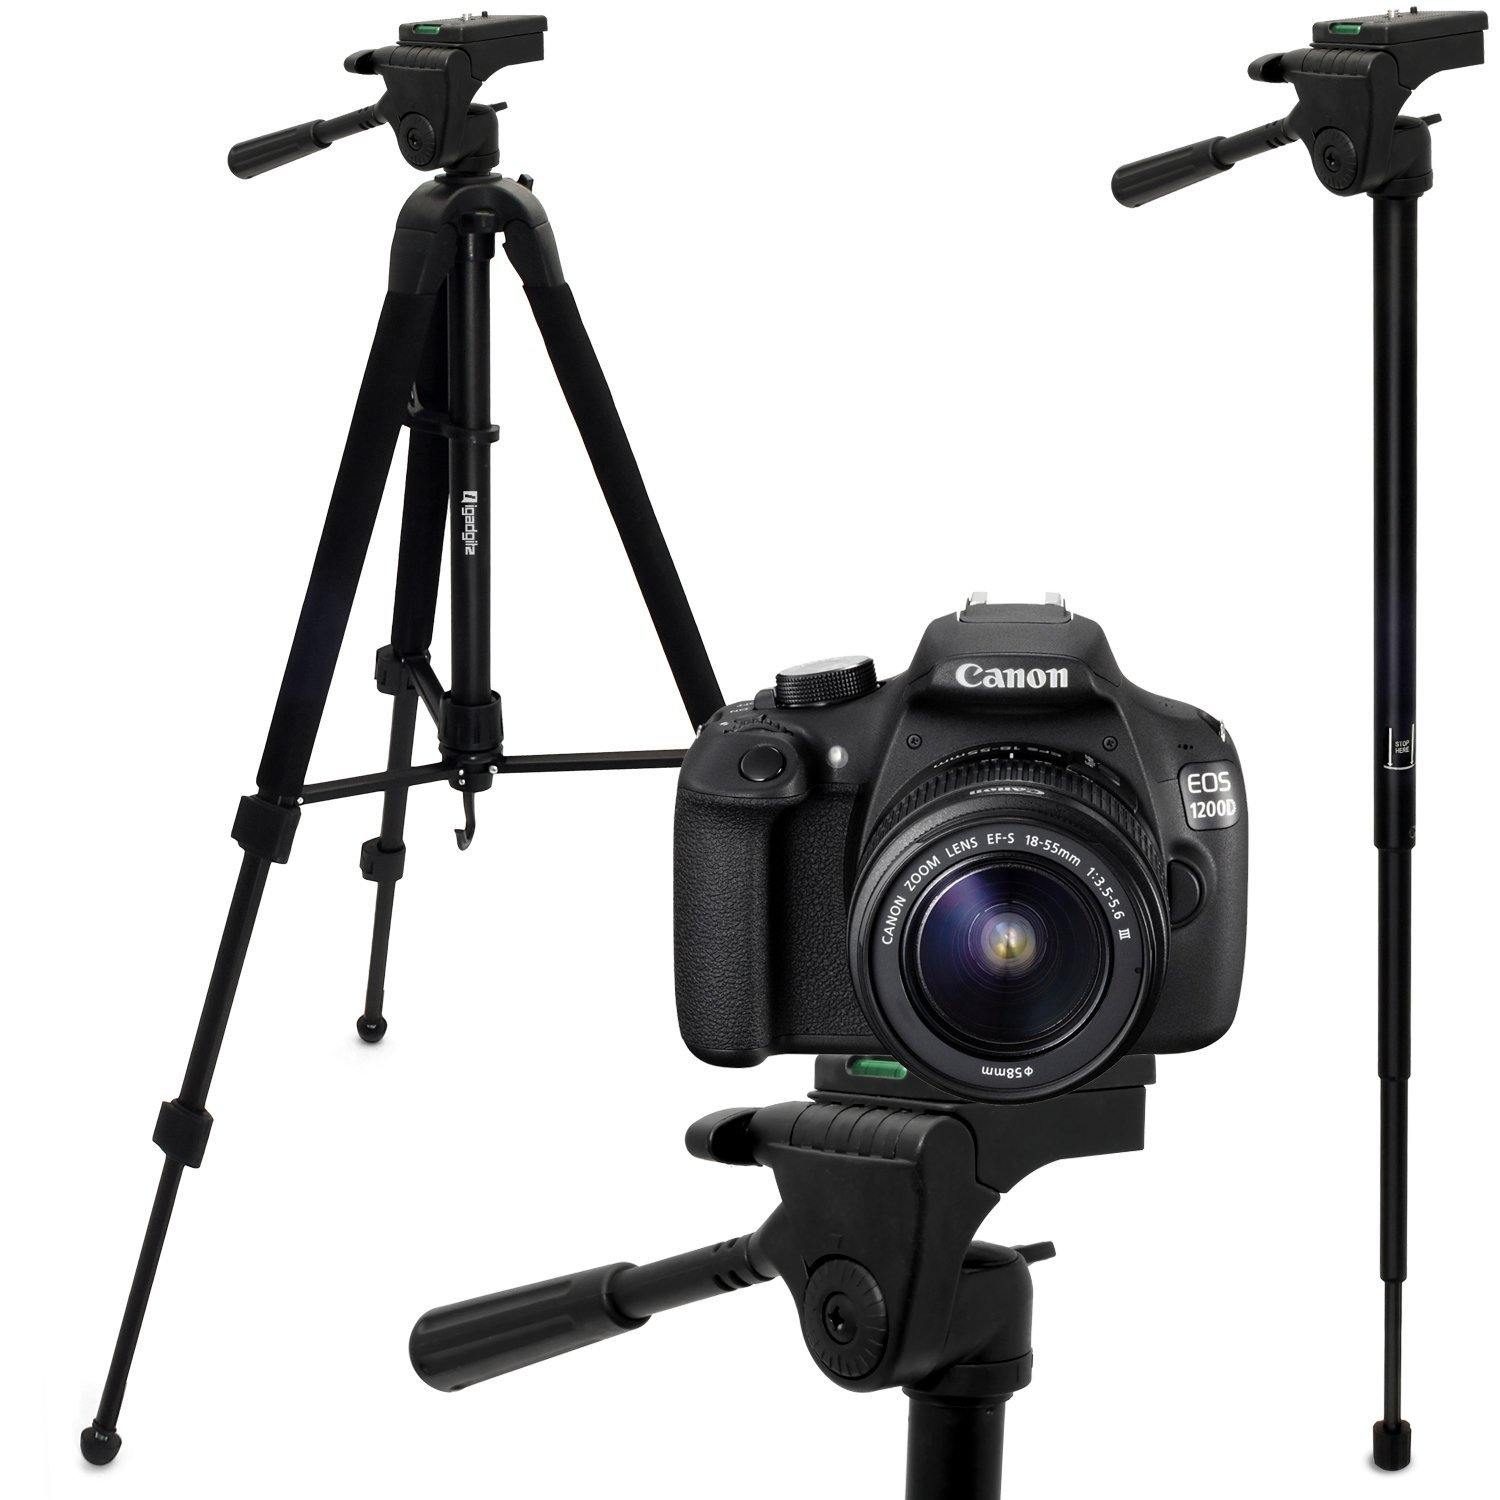 "iGadgitz 150cm 59"" 2 in 1 Combined Tripod & Monopod for Canon R 5DS 60Da 650D 6D 700D 70D 750D 760D 80D M10 M3 Cameras"